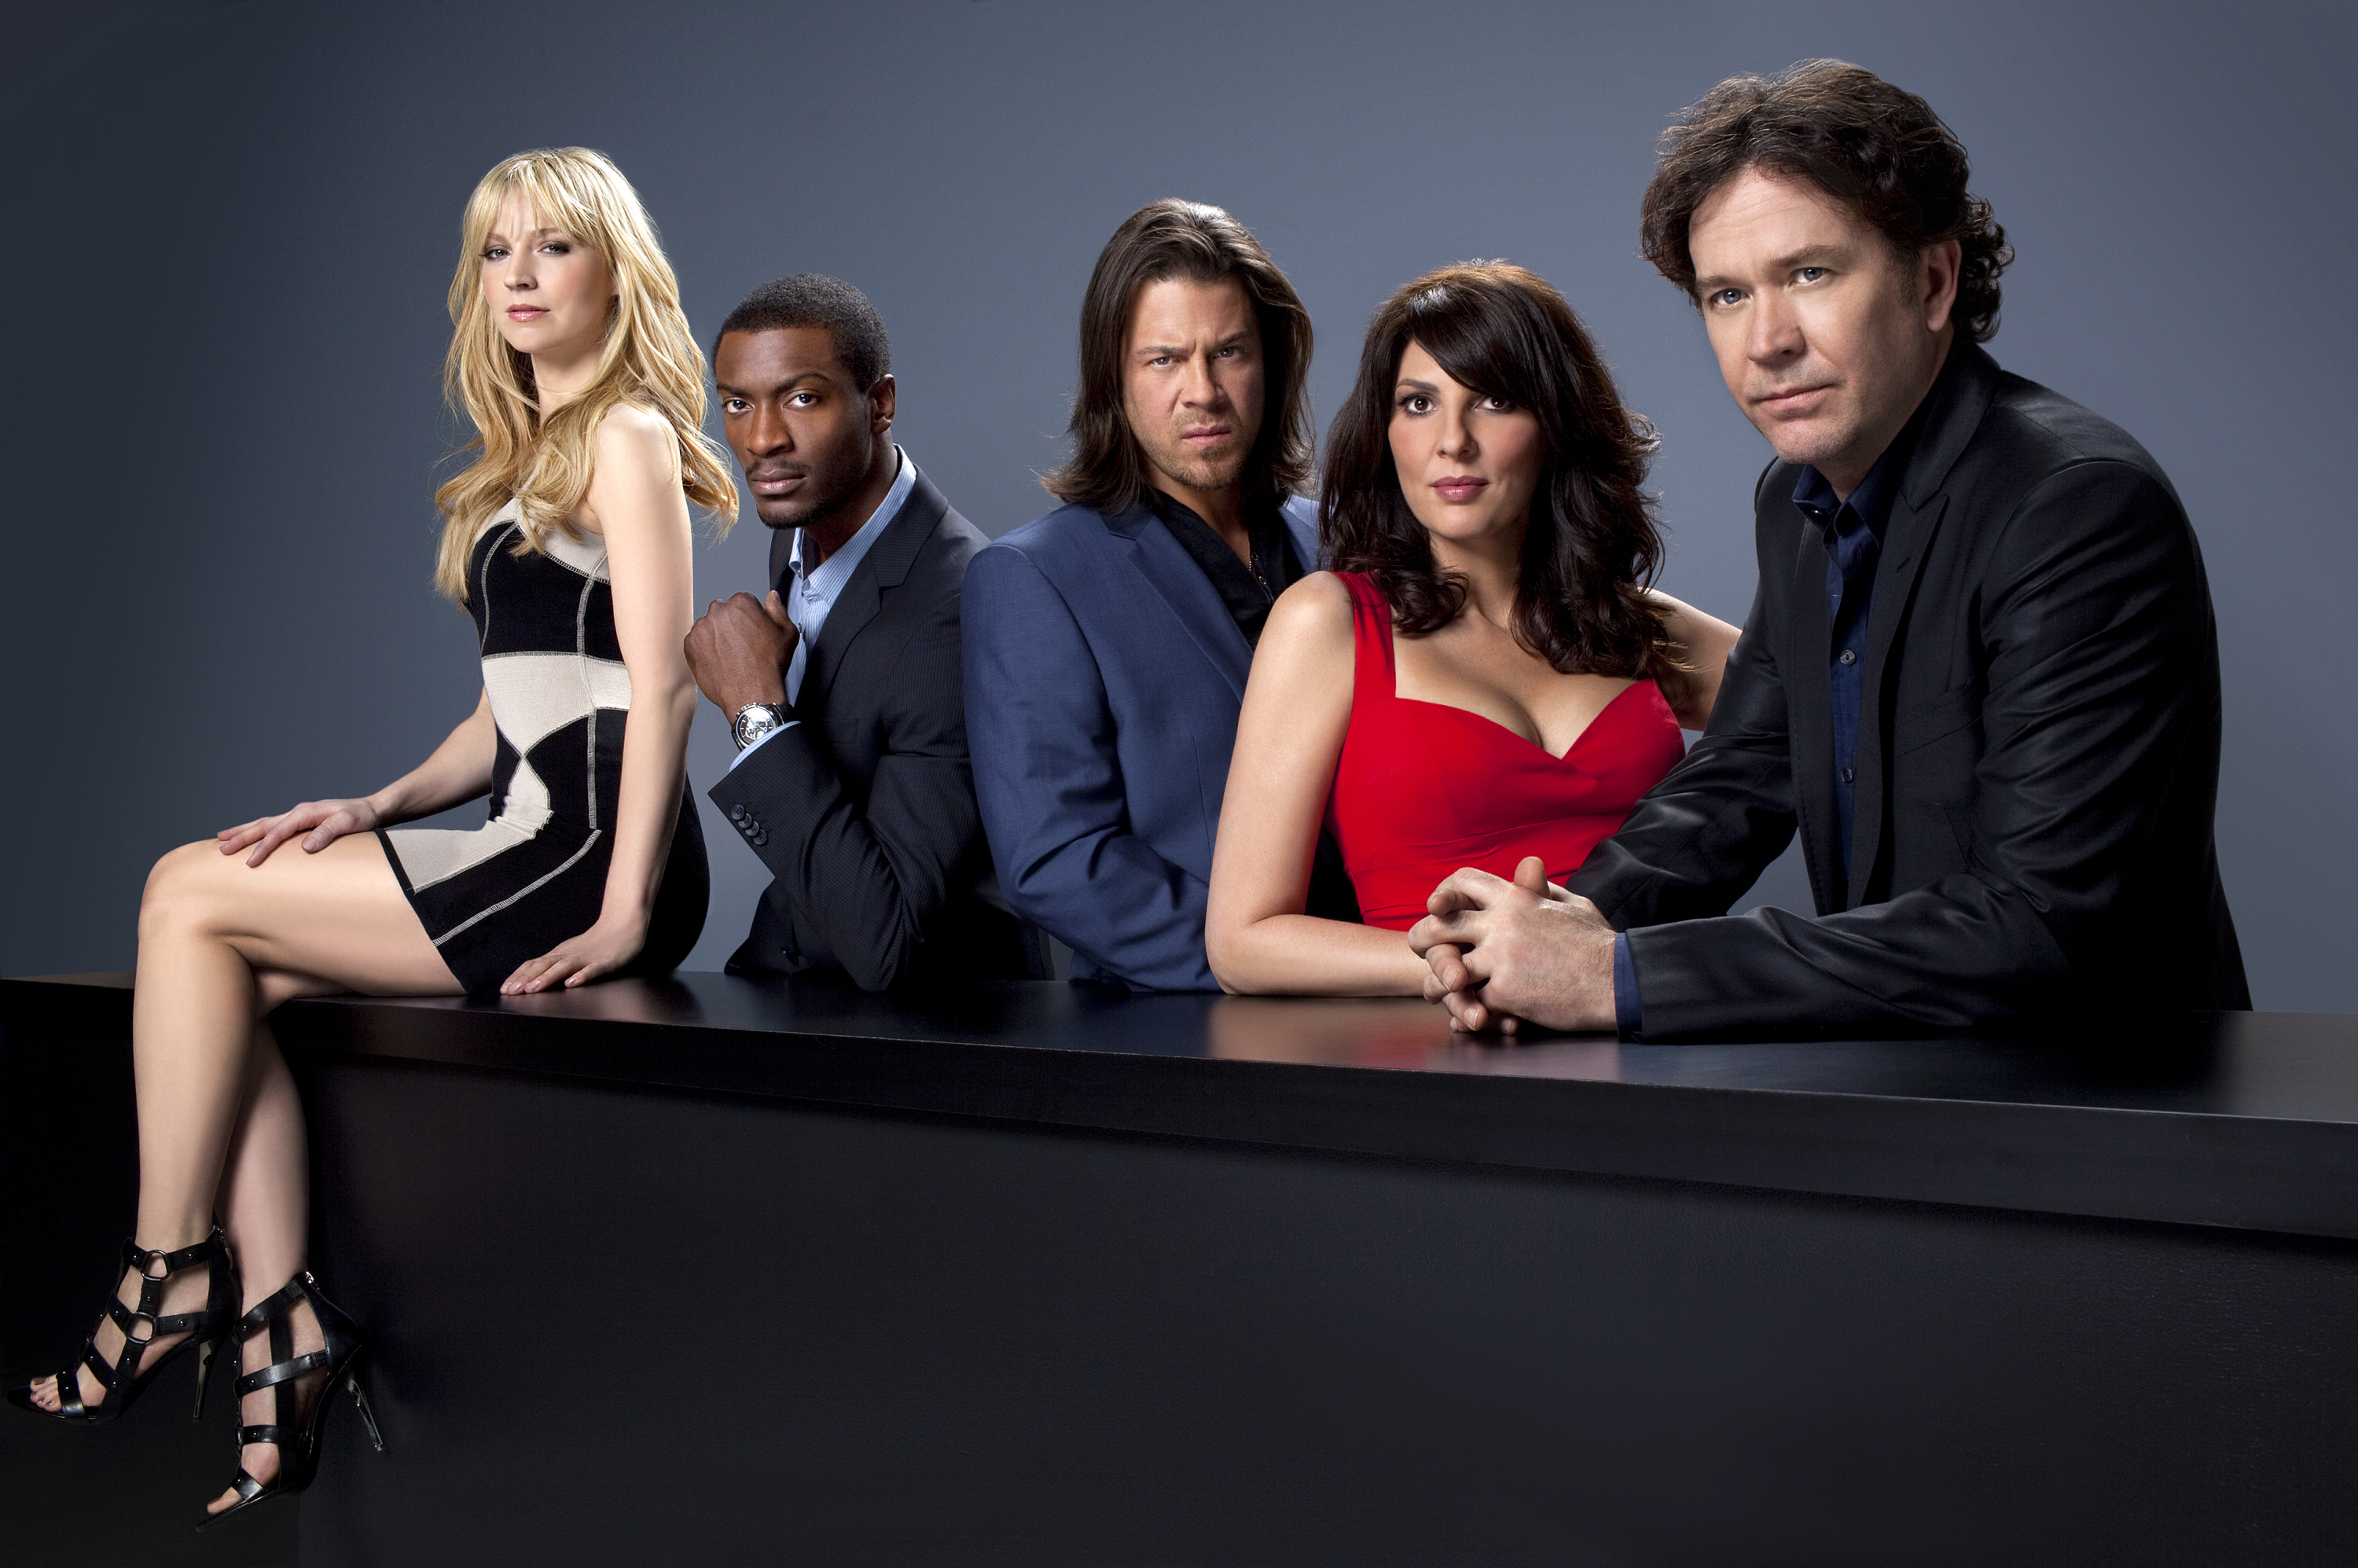 HQ Leverage Wallpapers | File 3508.82Kb